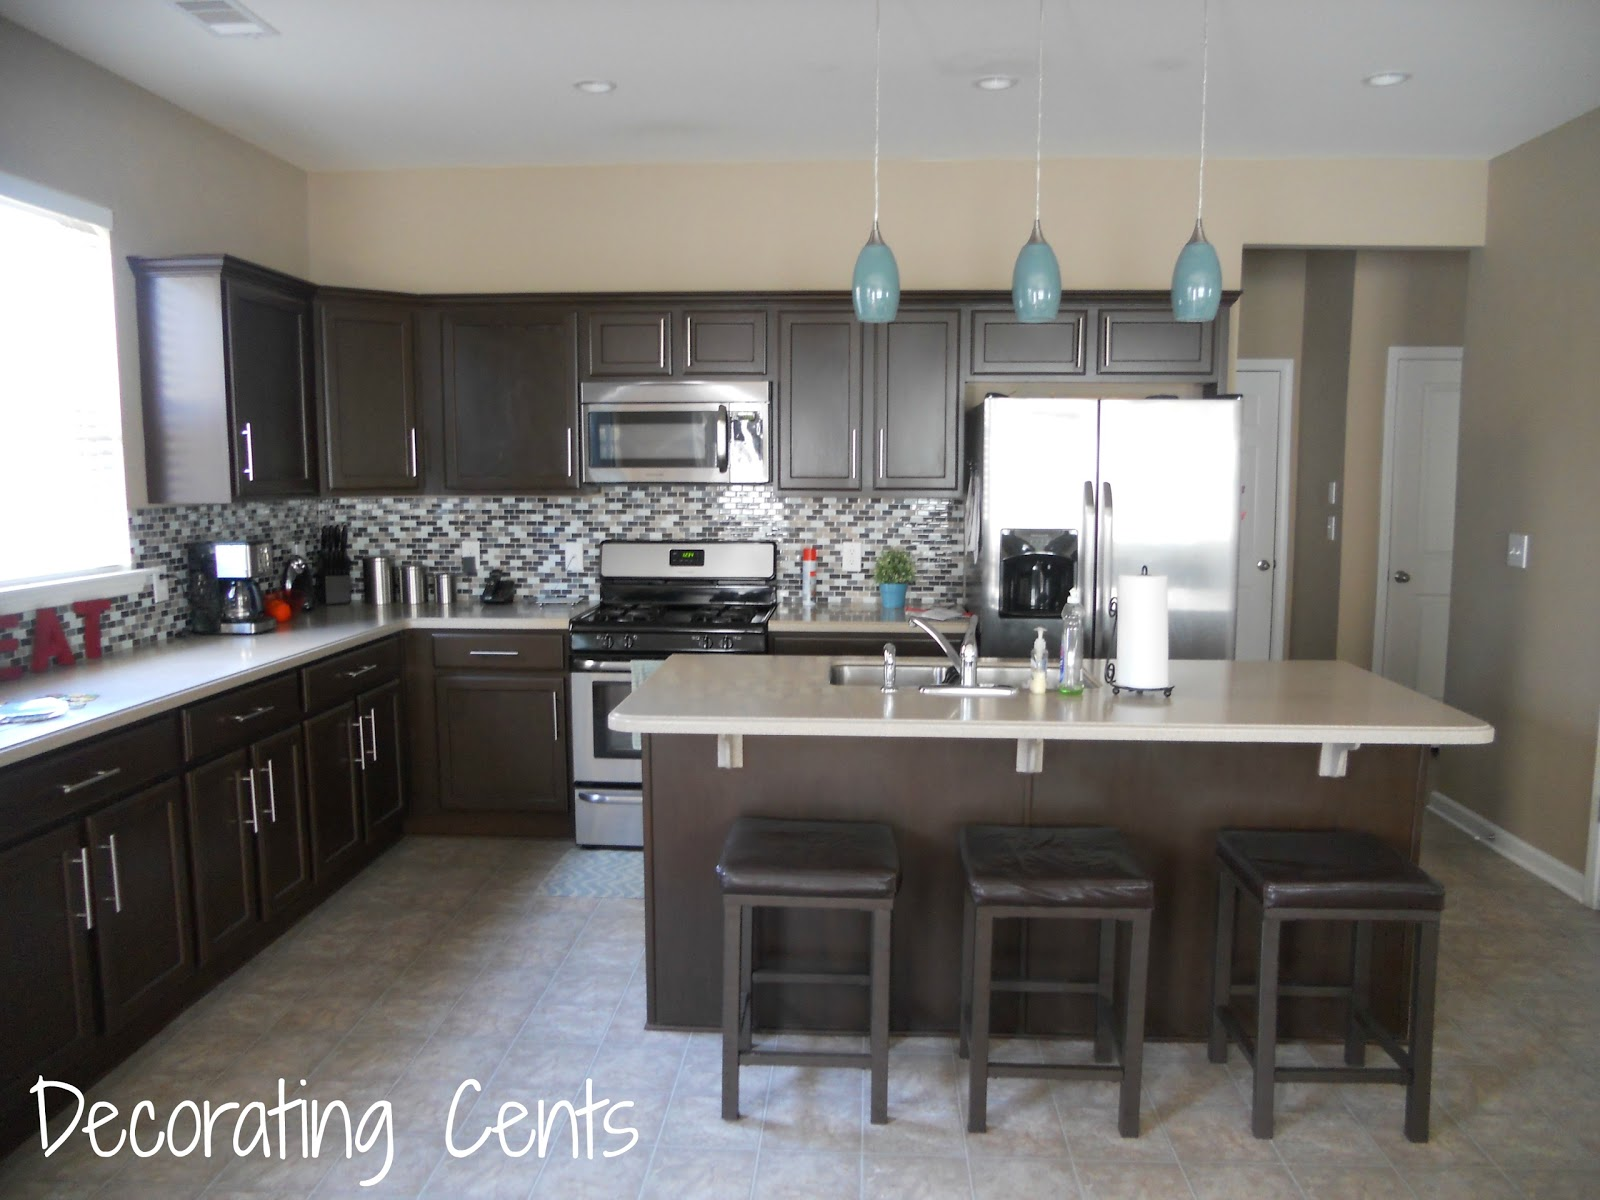 Light Blue and Brown Kitchen Decor